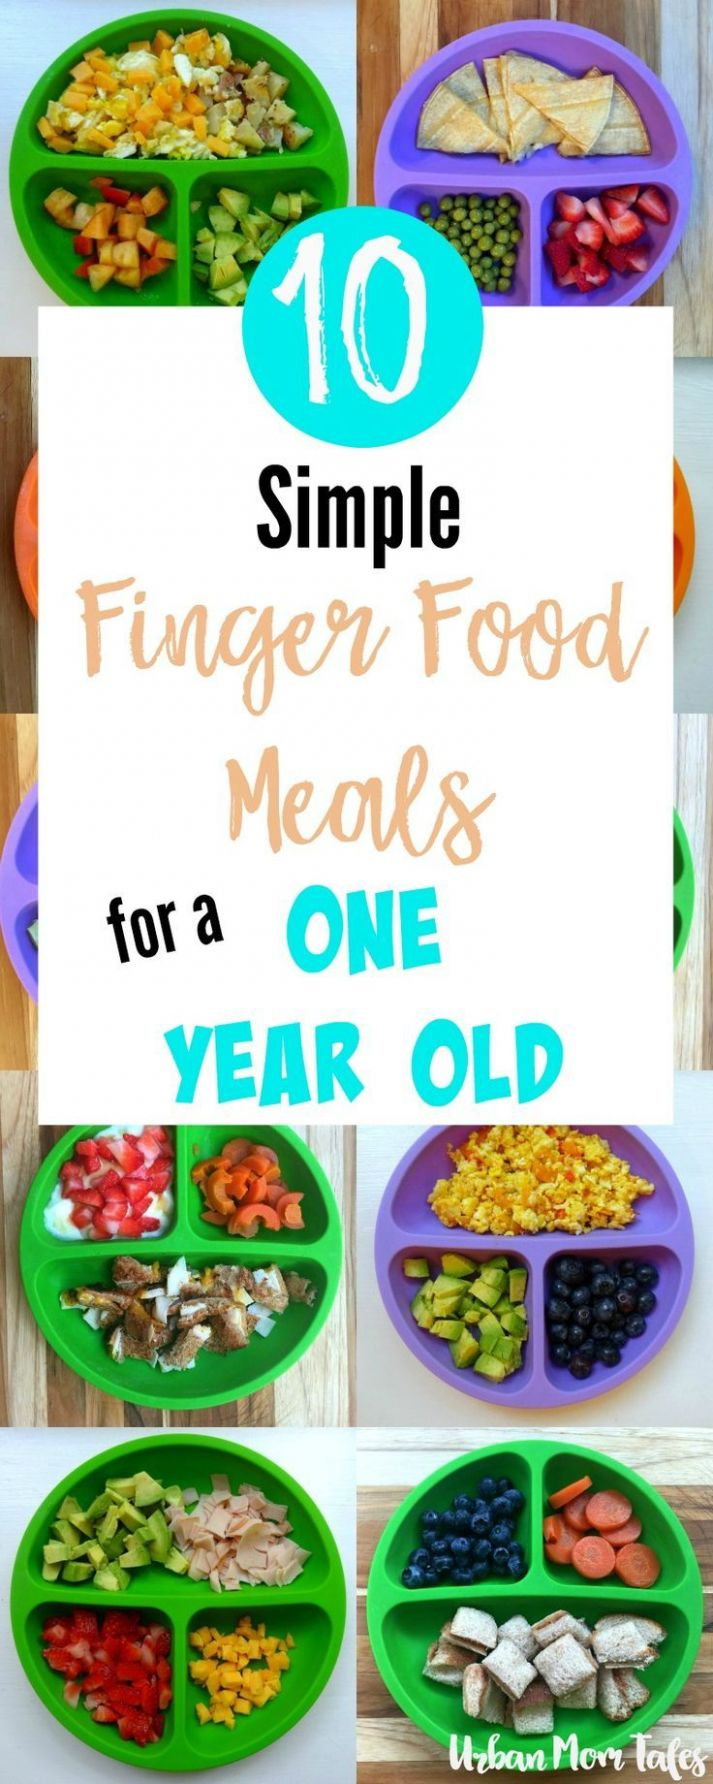 12 Simple Finger Food Meals for A One Year Old | Baby food recipes ..